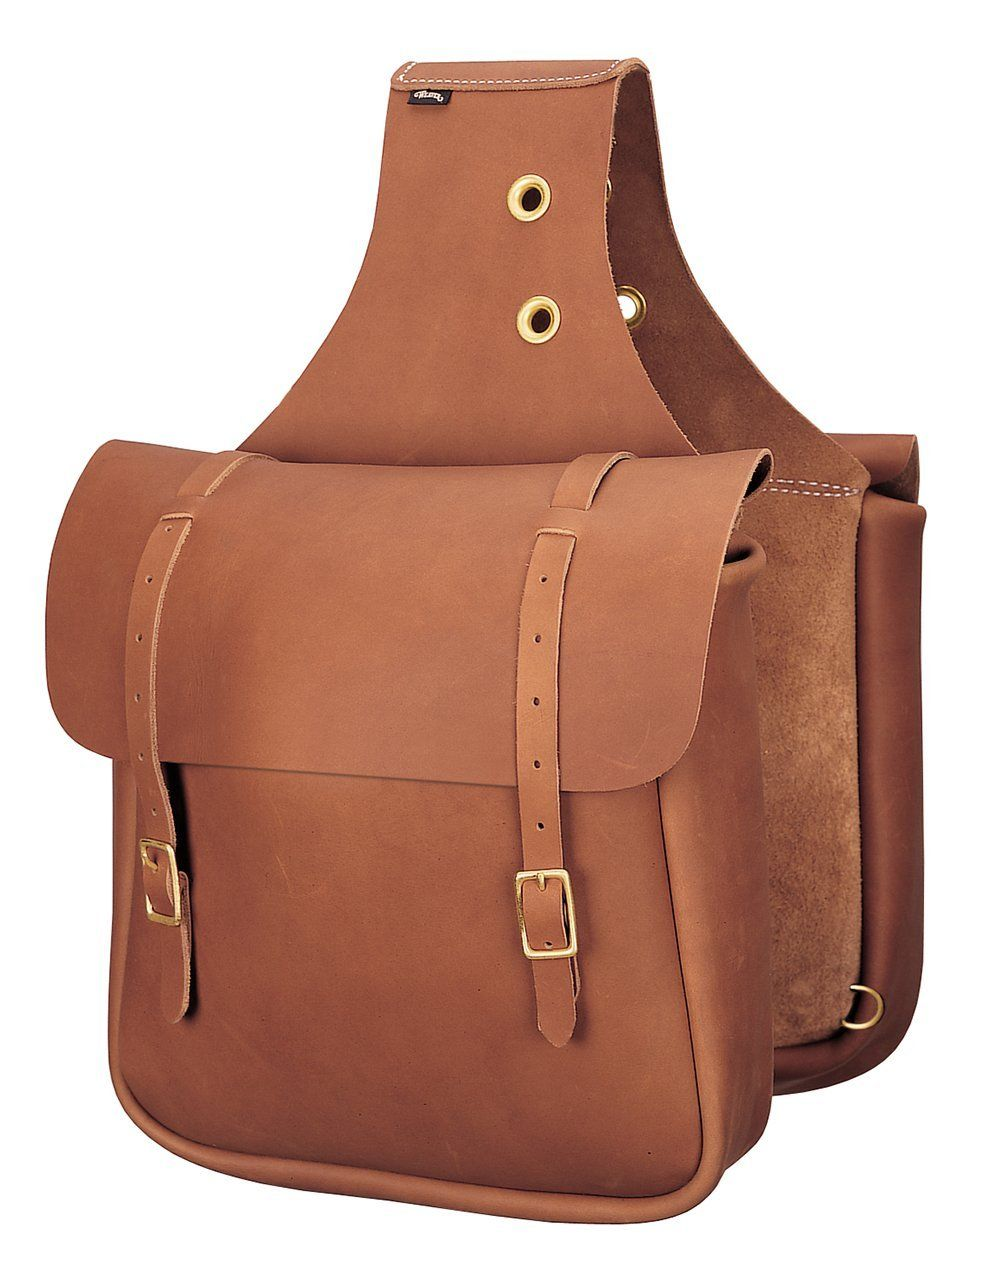 Found On Google From Amazon Com With Images Leather Saddle Bags Saddle Bags Horse Leather